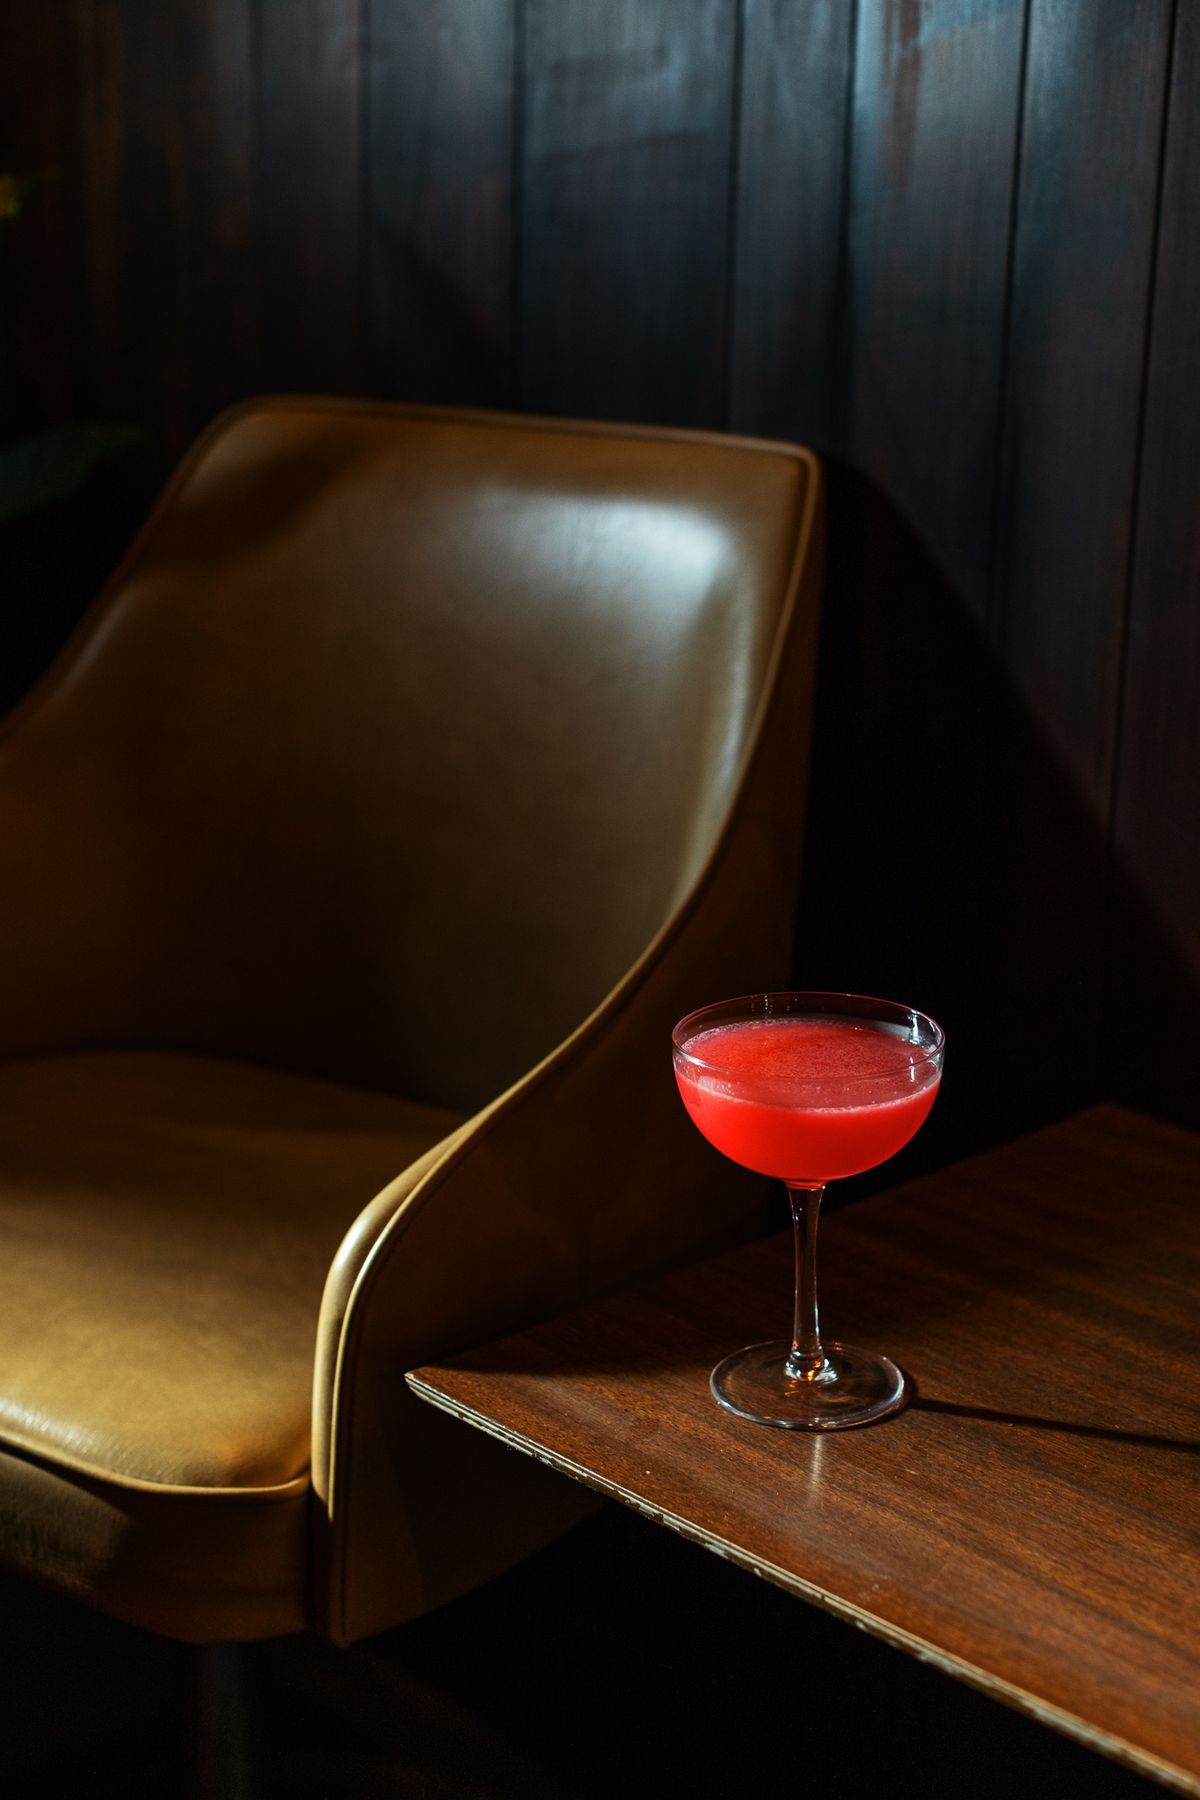 A raspberry red cocktail served in a coup sits on a wooden table next to a mid-century chair.